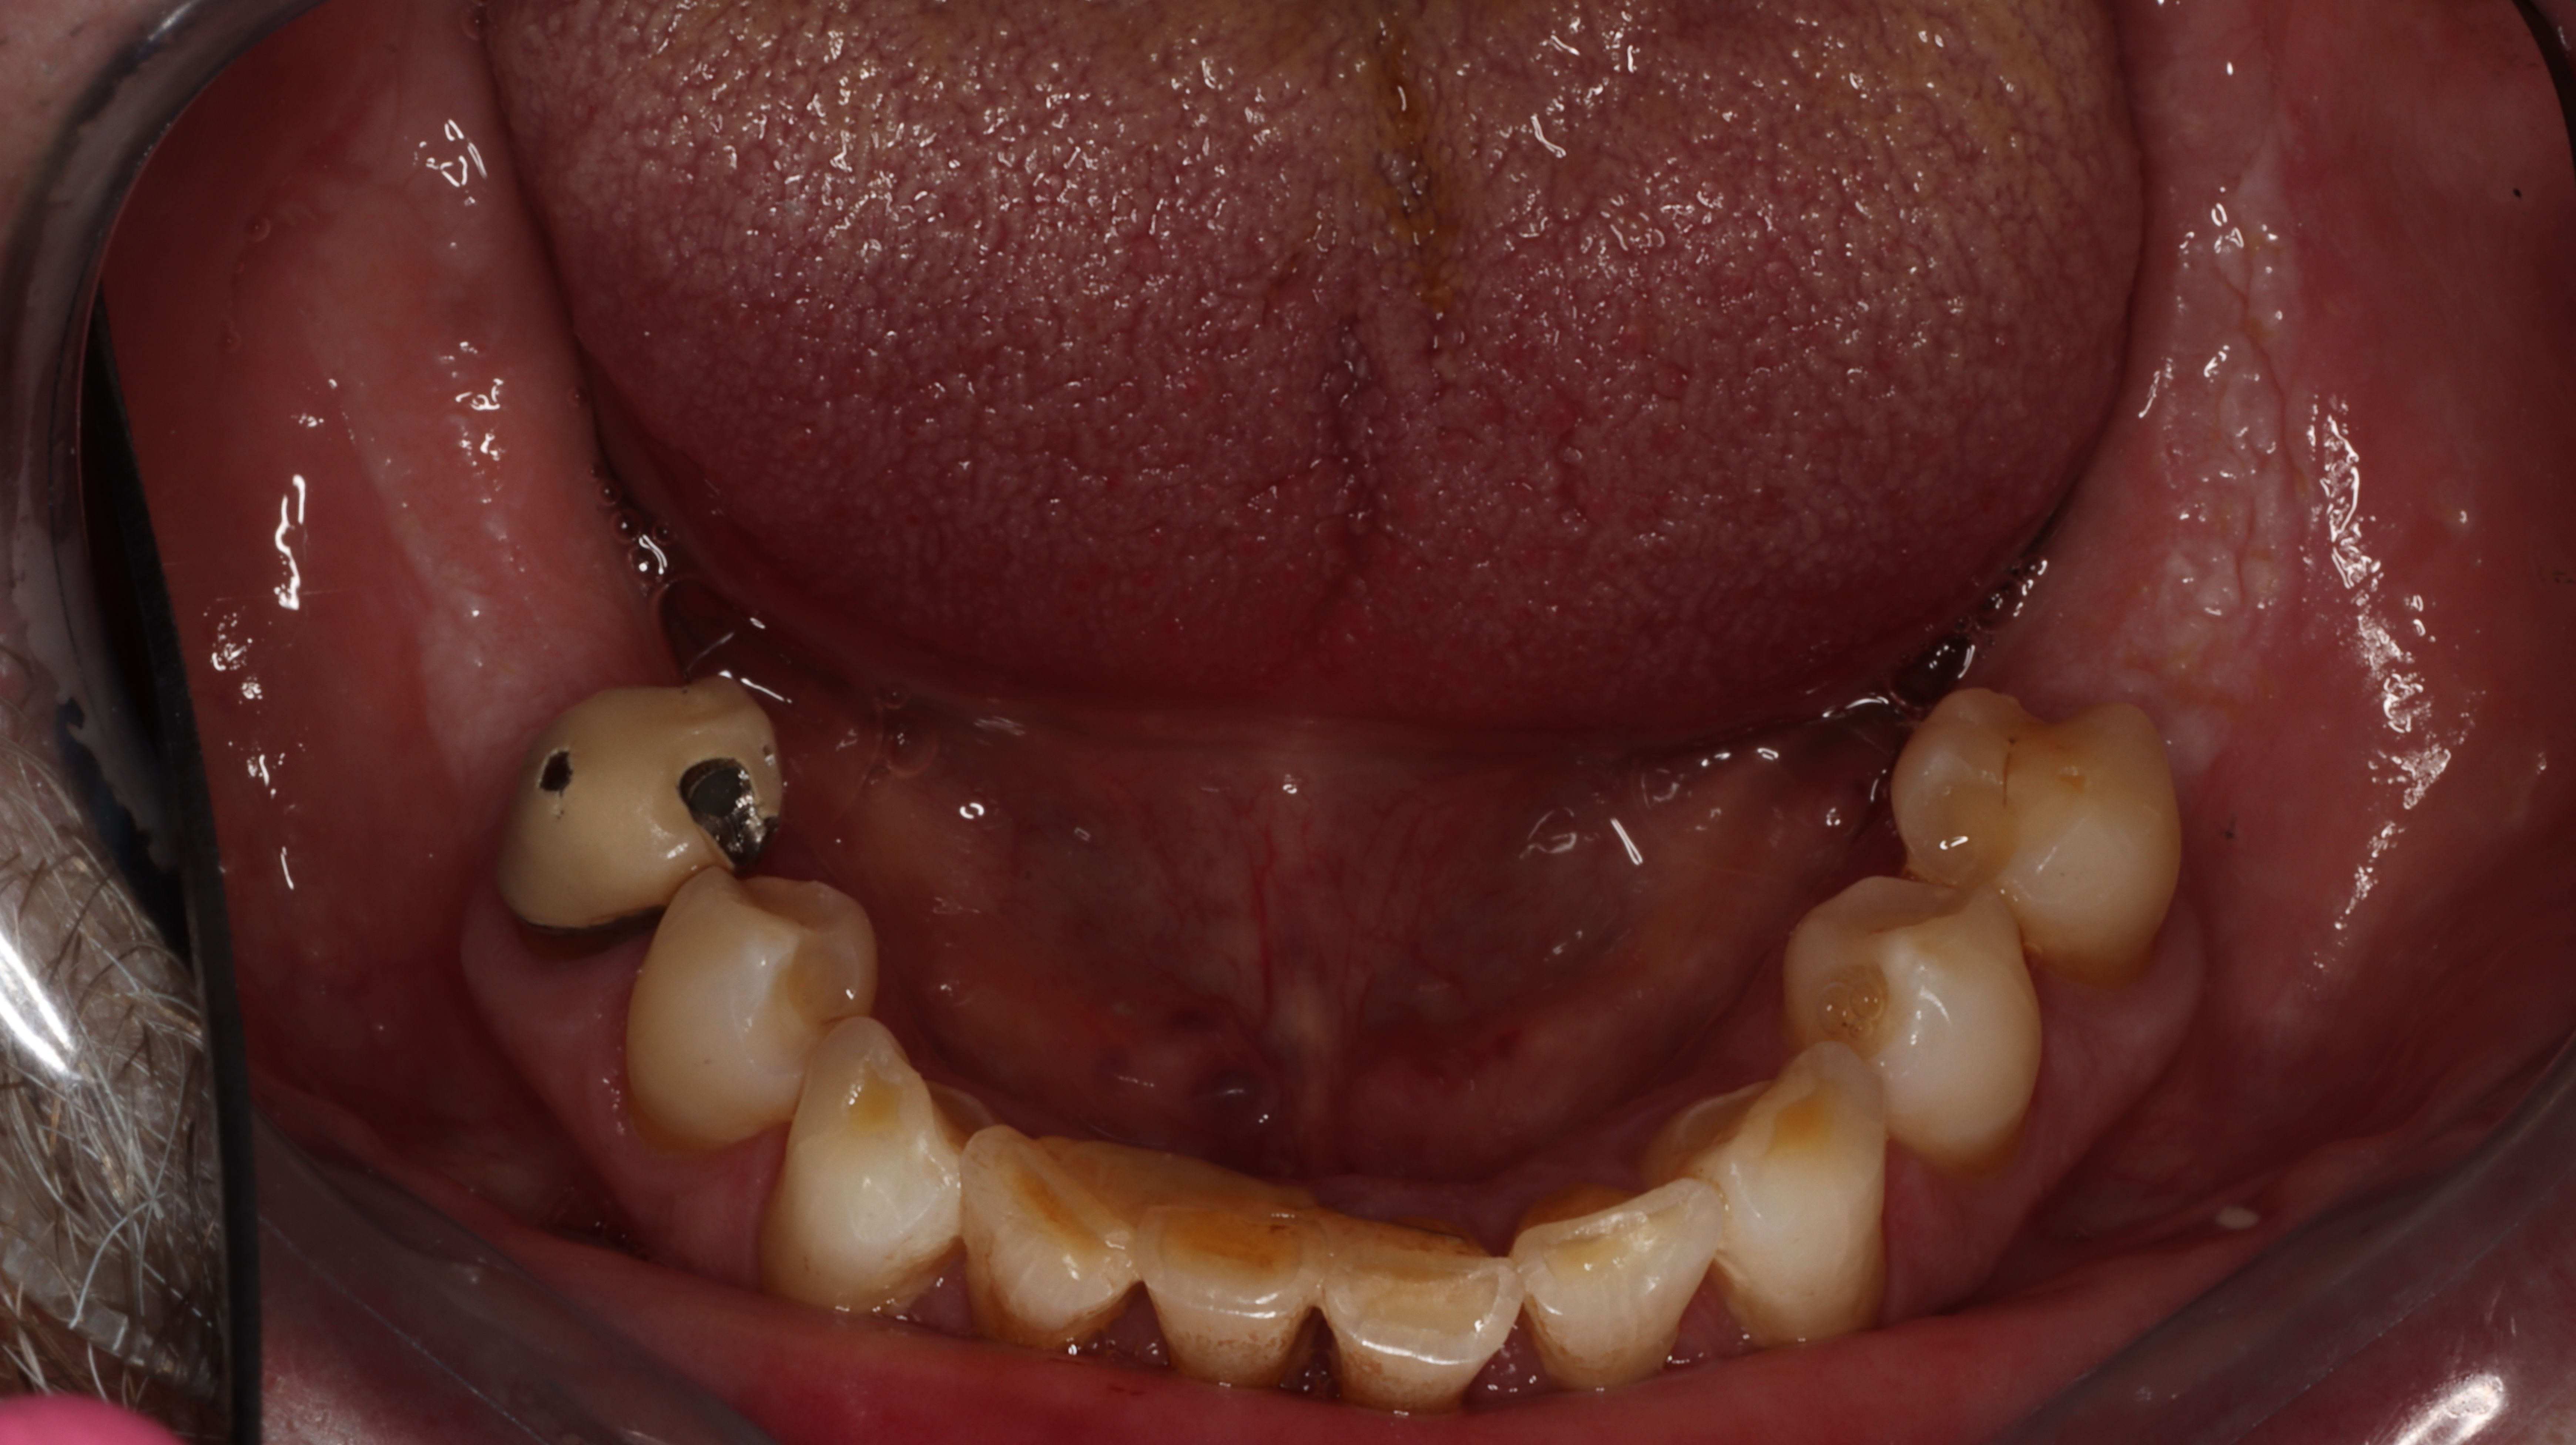 Figure 2. Occlusal view pre-op extraction of periodontally-involved mandibular incisors.